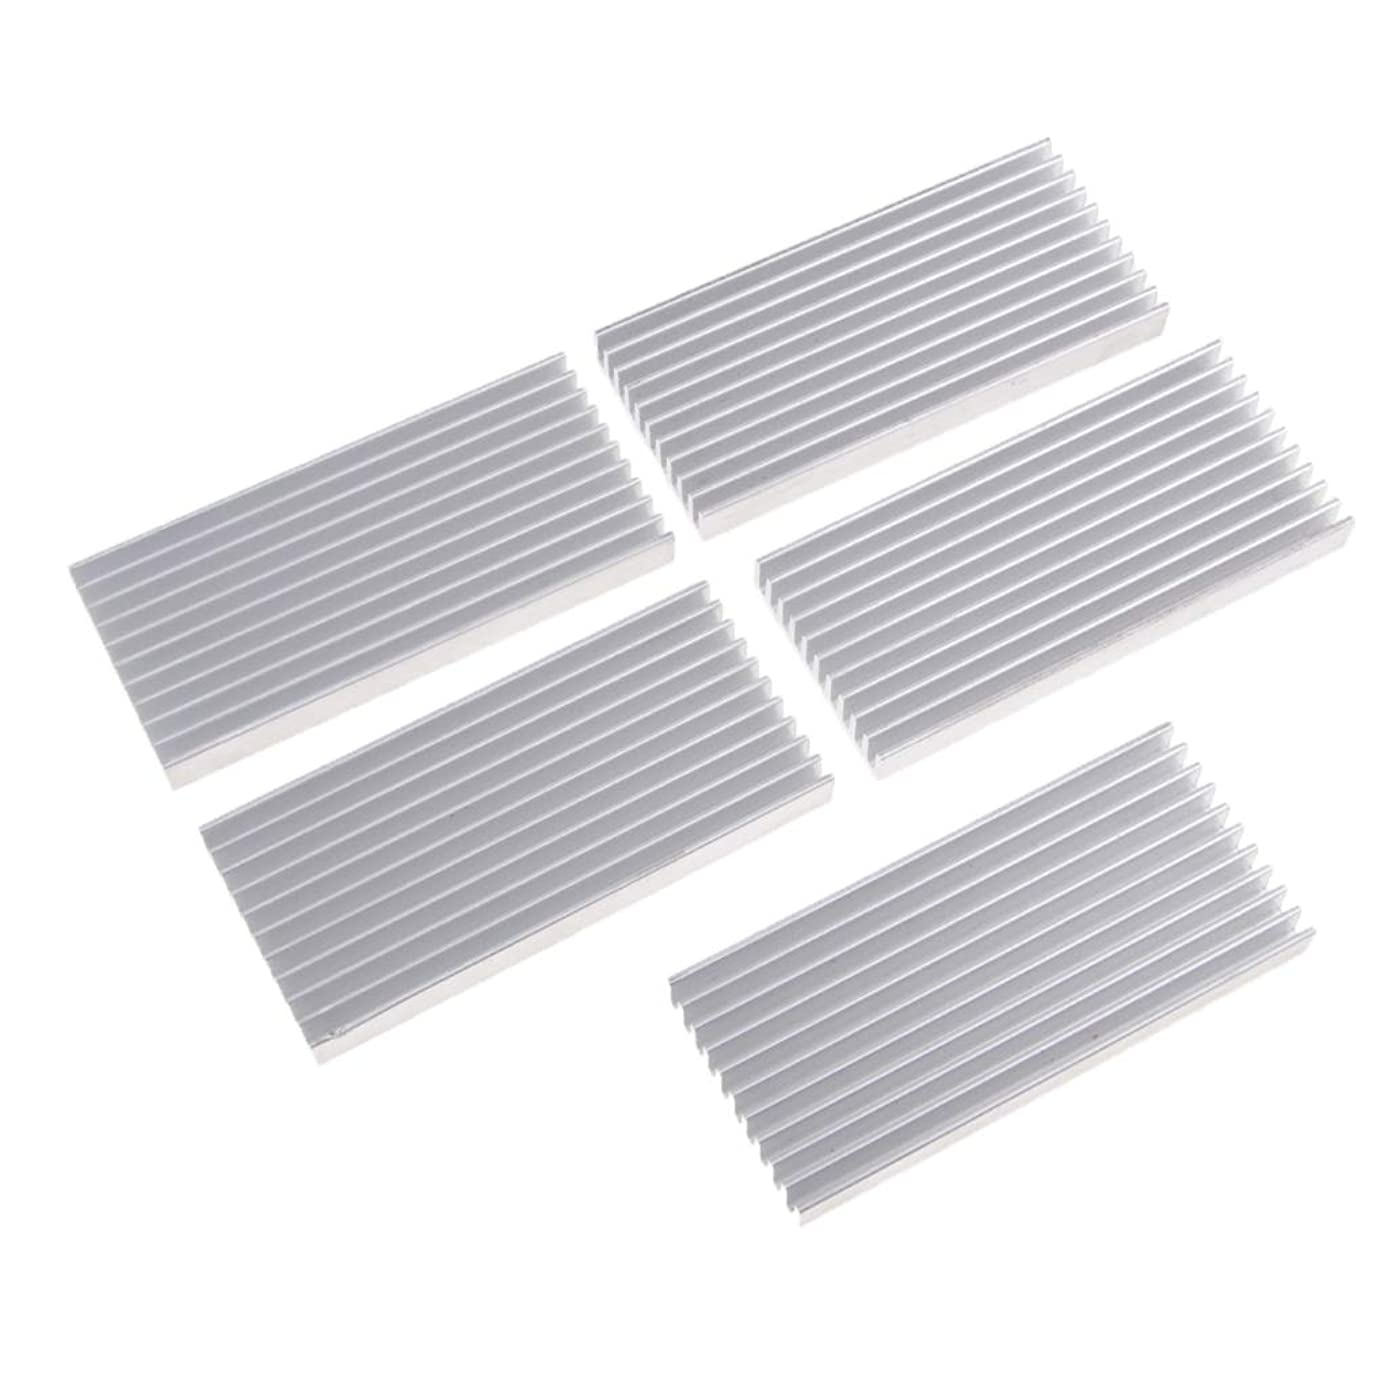 kesoto 5 Pack Aluminum Radiator Heat Sink Cooling Fin for PC CPU & LED Chip & Power Amplifier & Transistor Semiconductor Devices (1004510mm)